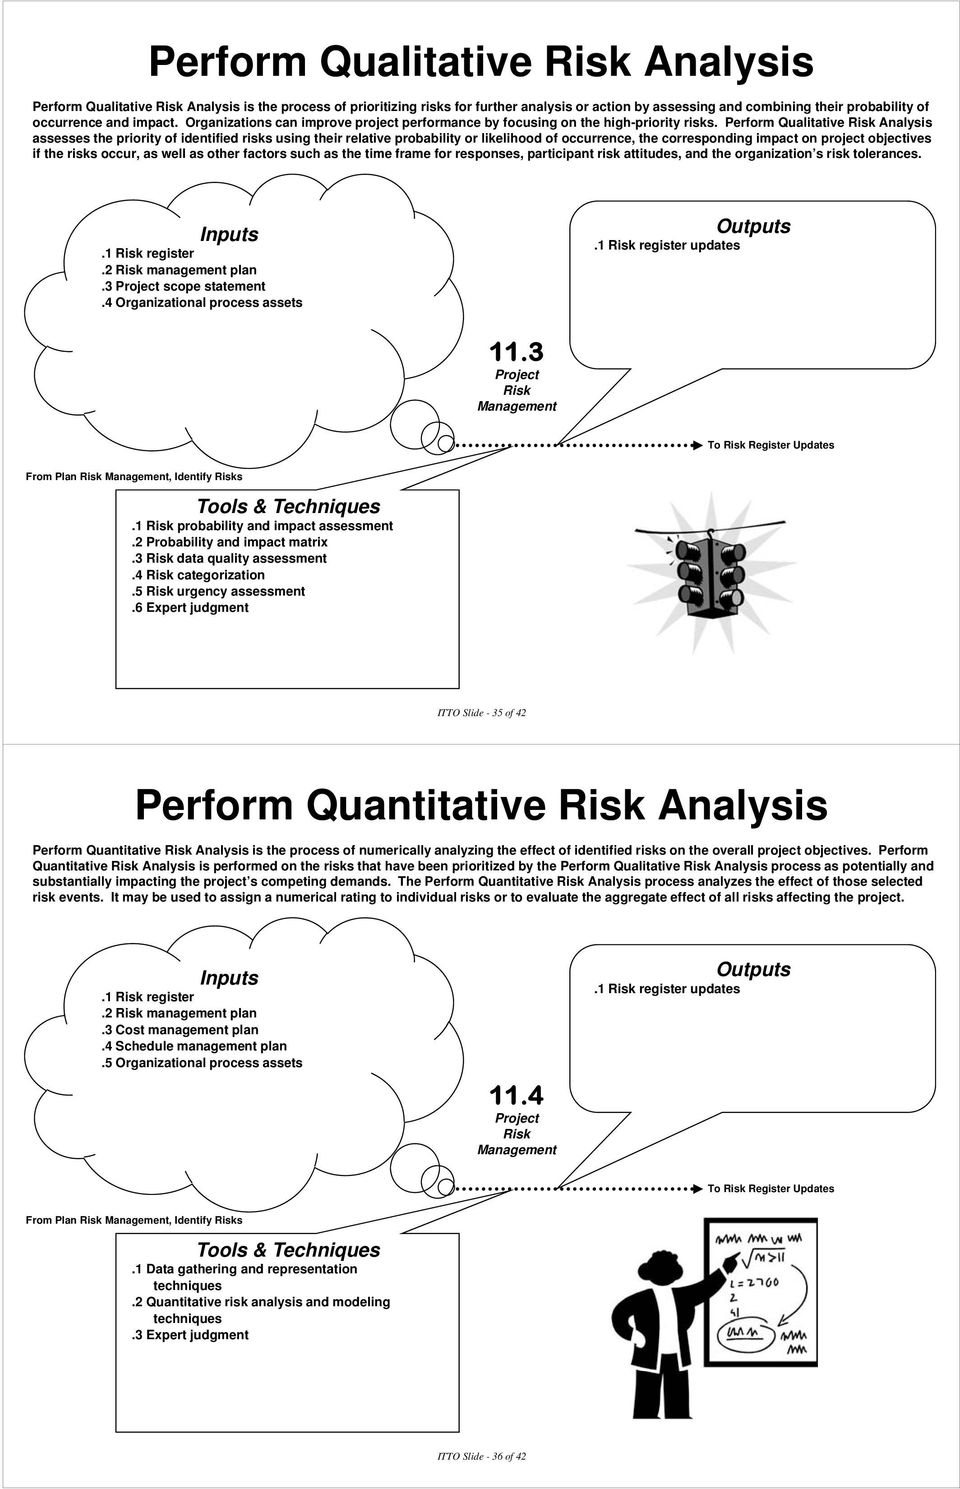 Perform Qualitative Risk Analysis assesses the priority of identified risks using their relative probability or likelihood of occurrence, the corresponding impact on project objectives if the risks